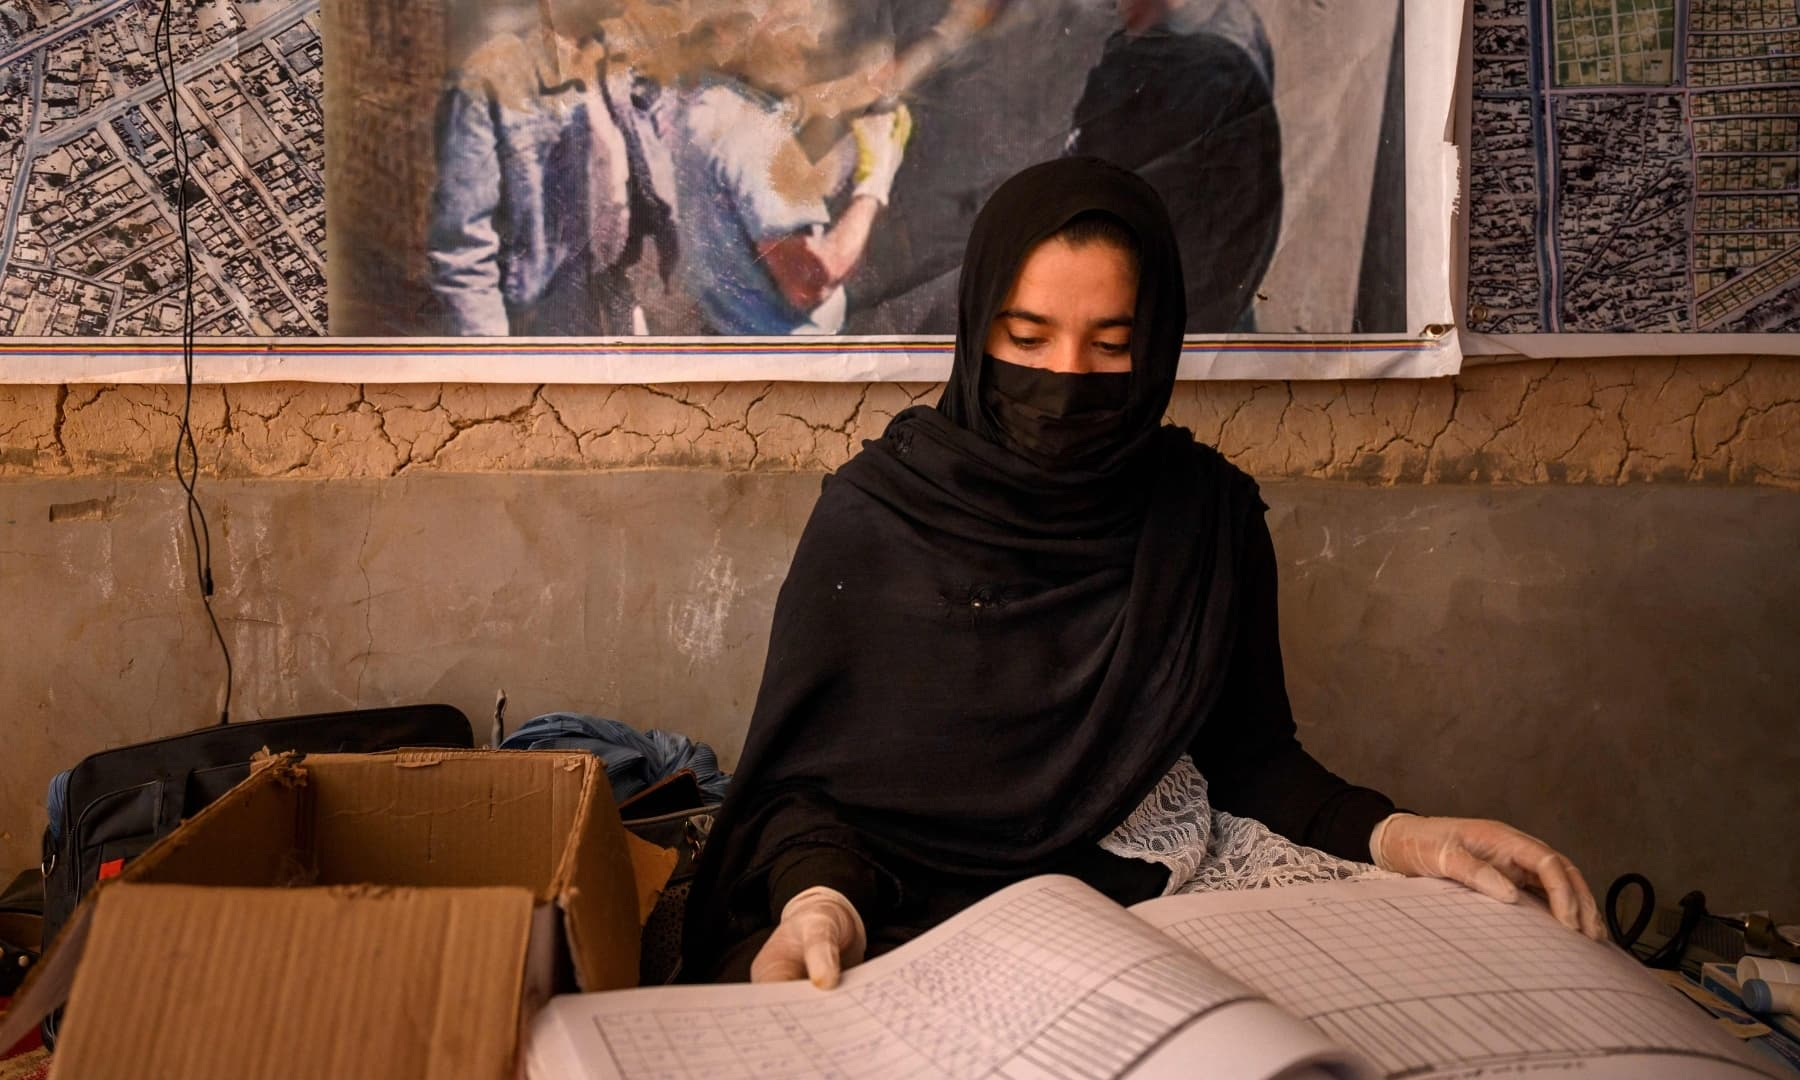 A midwife working for a NGO registers patients at a mobile clinic for women and children set up at the residence of a local elder in Yarmuhamad village, near Lashkar Gah in Helmand province, Afghanistan, March 28, 2021. — AFP/File